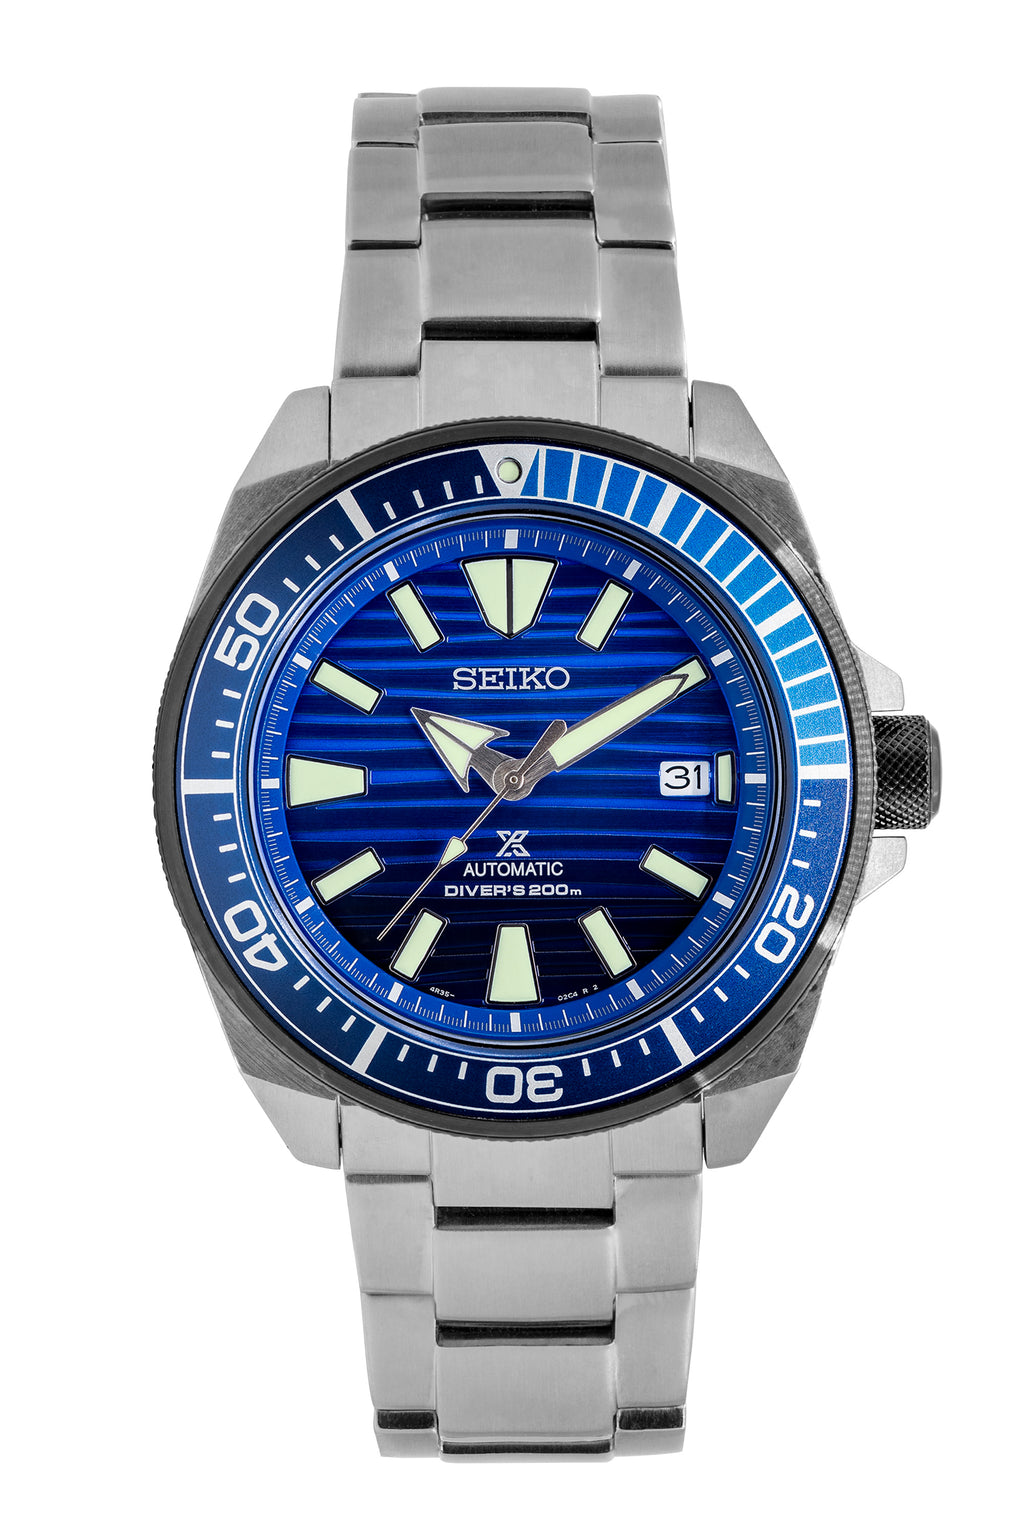 SEIKO Prospex Samurai 'Save The Ocean' Automatic Men's Diver Watch - SRPC93K1 - Blue Dial